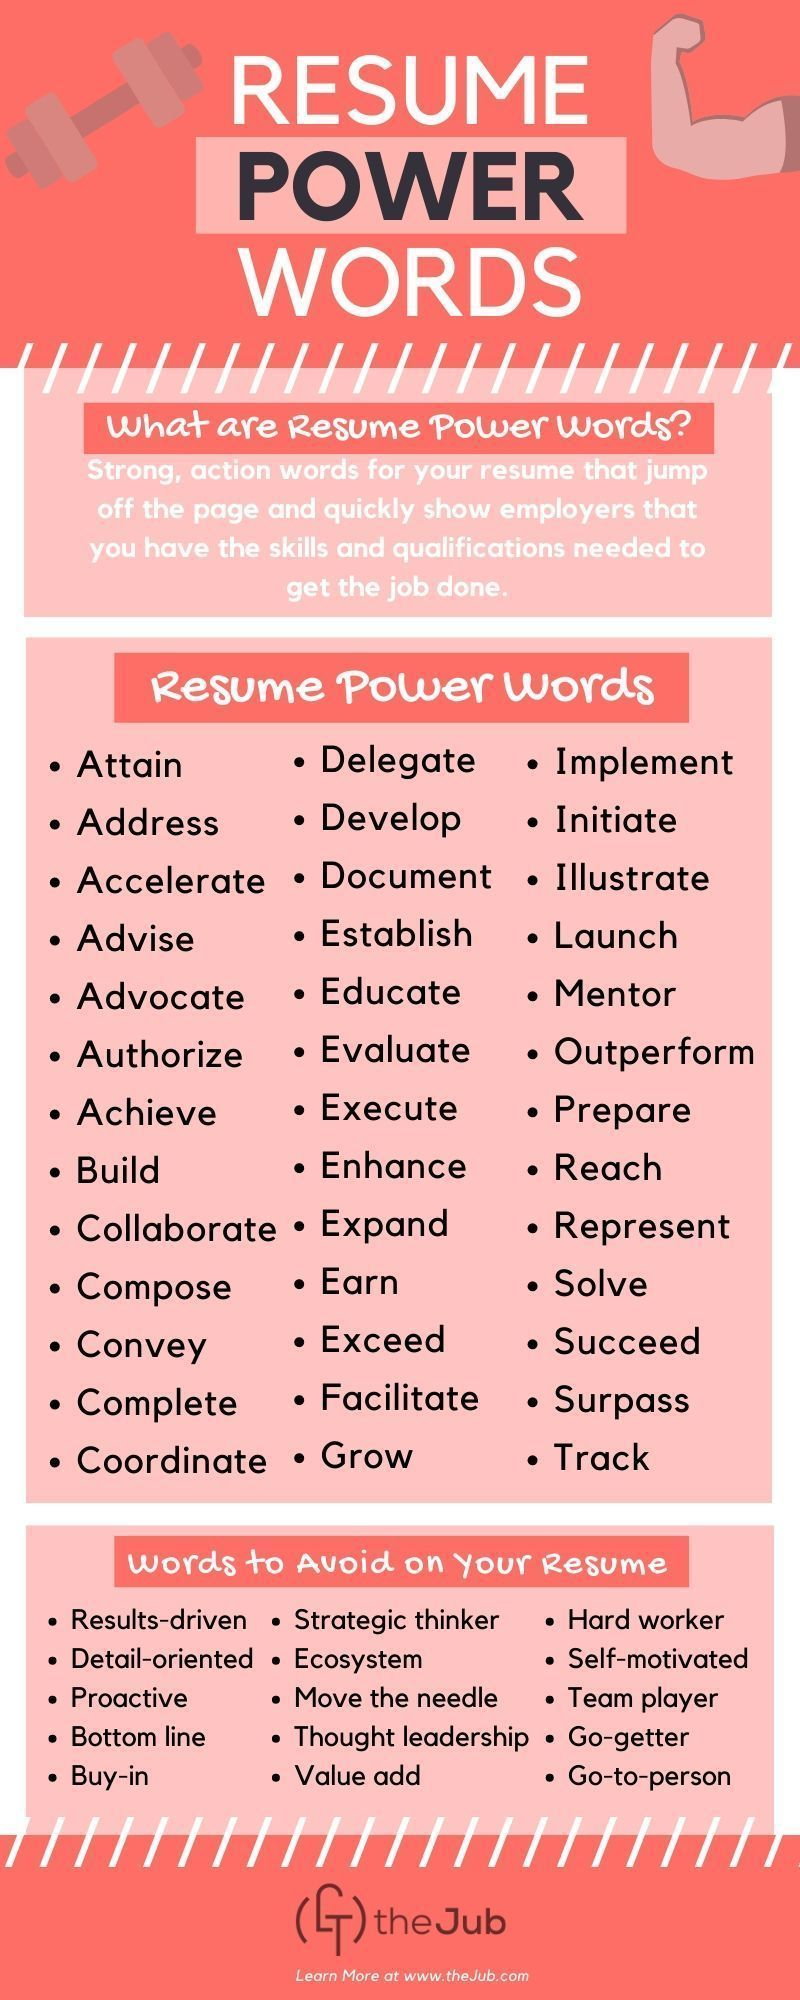 Resume Power Words For 2020 Infographic In 2021 Resume Power Words Resume Skills List Resume Skills